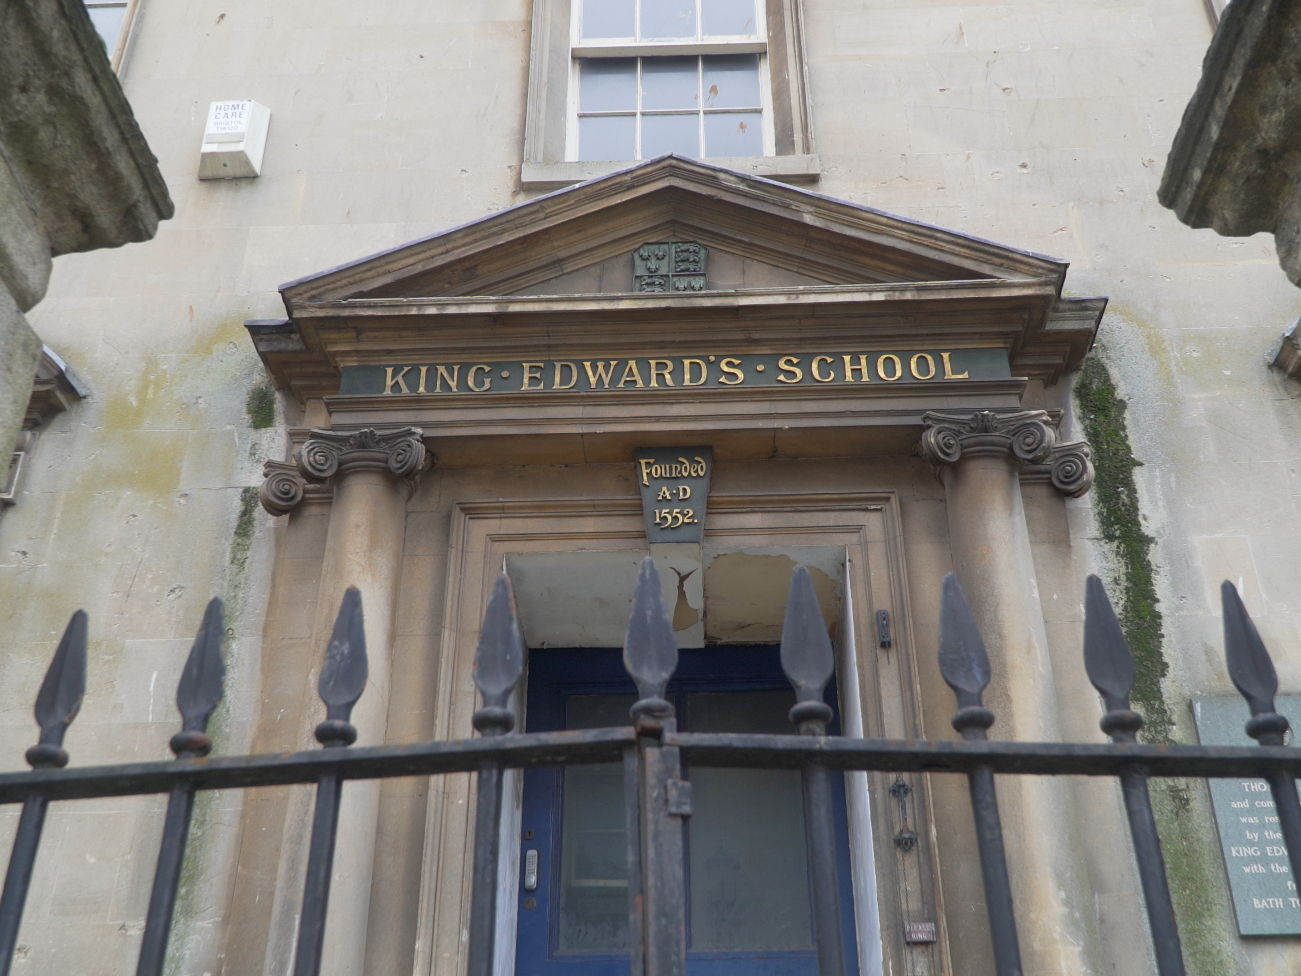 Another treasure of Bath: King Edward's School, founded in 1552.